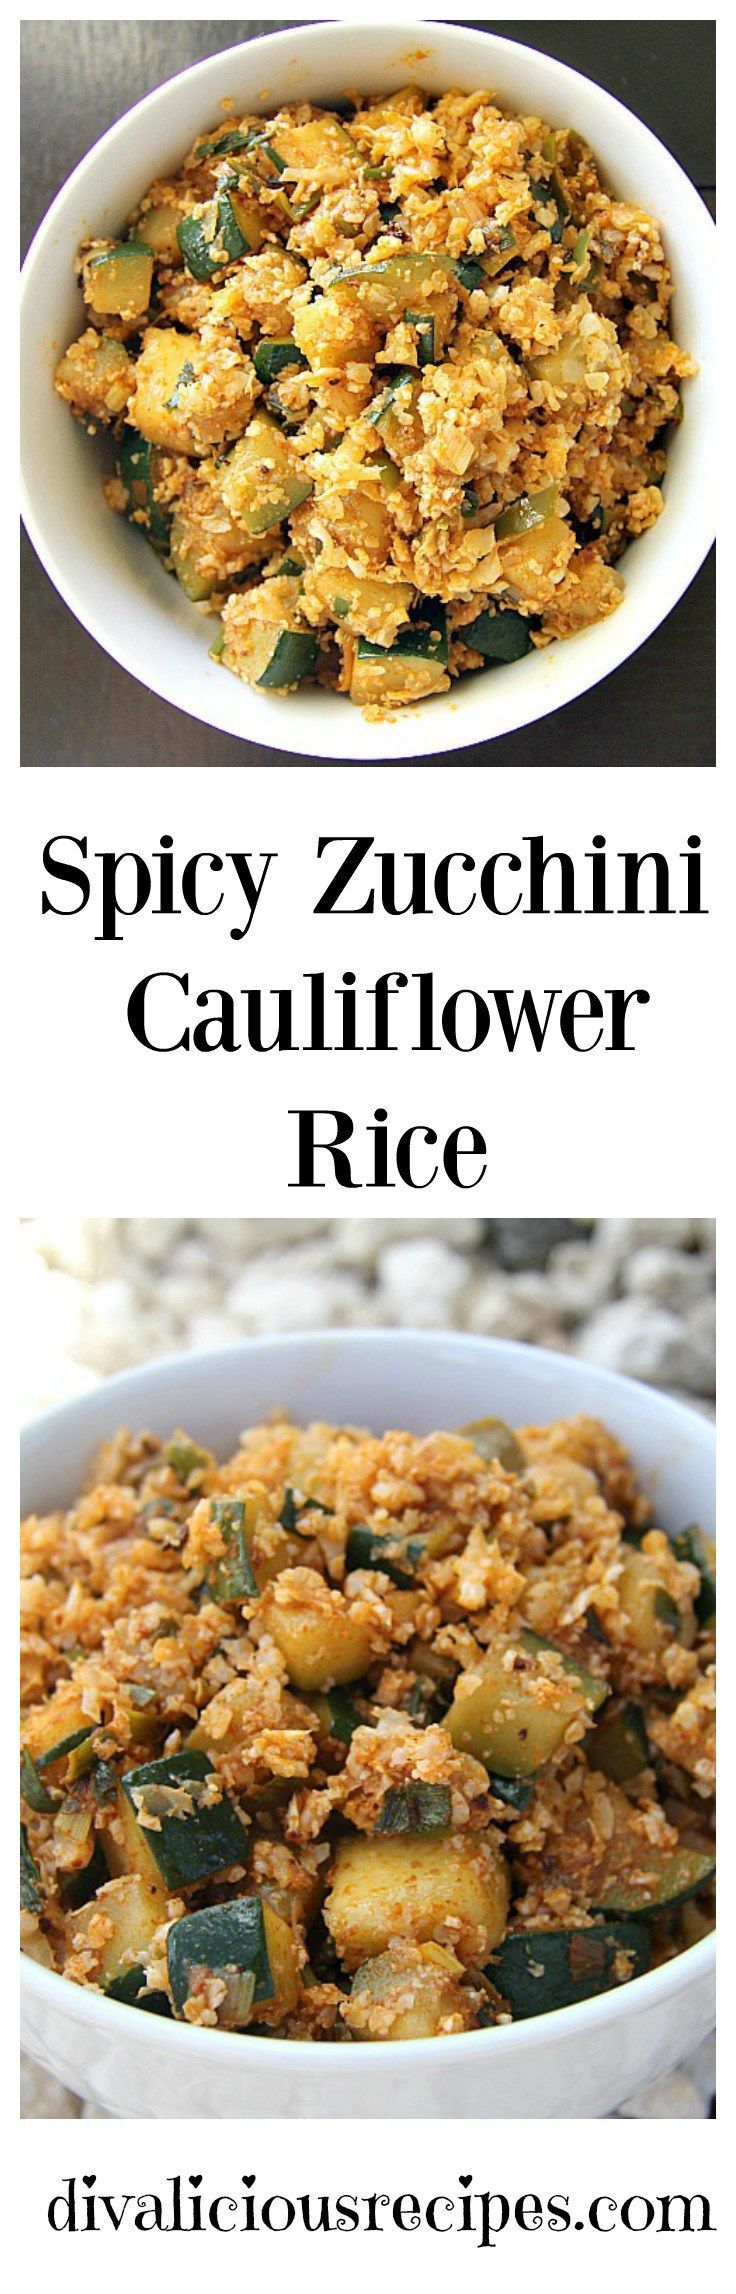 A spicy cauliflower rice dish that is great either as a side or a main. Recipe - http://divaliciousrecipes.com/2016/11/22/spicy-zucchini-cauliflower-rice/